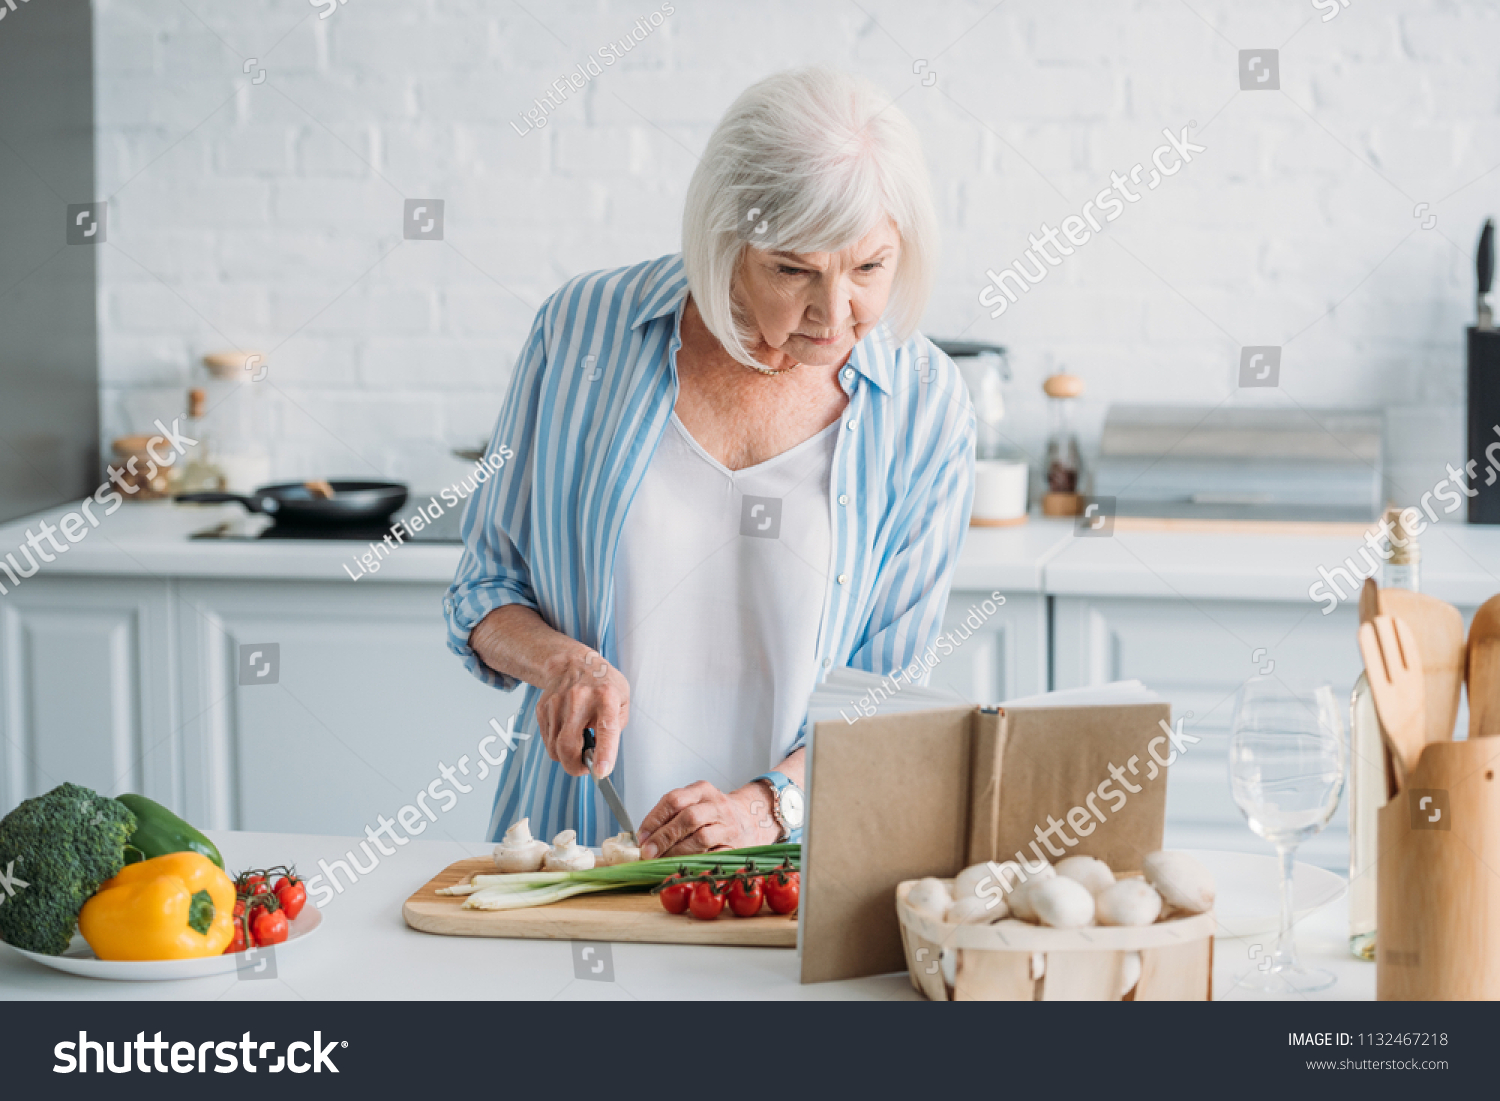 Portrait Senior Lady Looking Recipe Cookery Stock Photo (Safe to Use ...